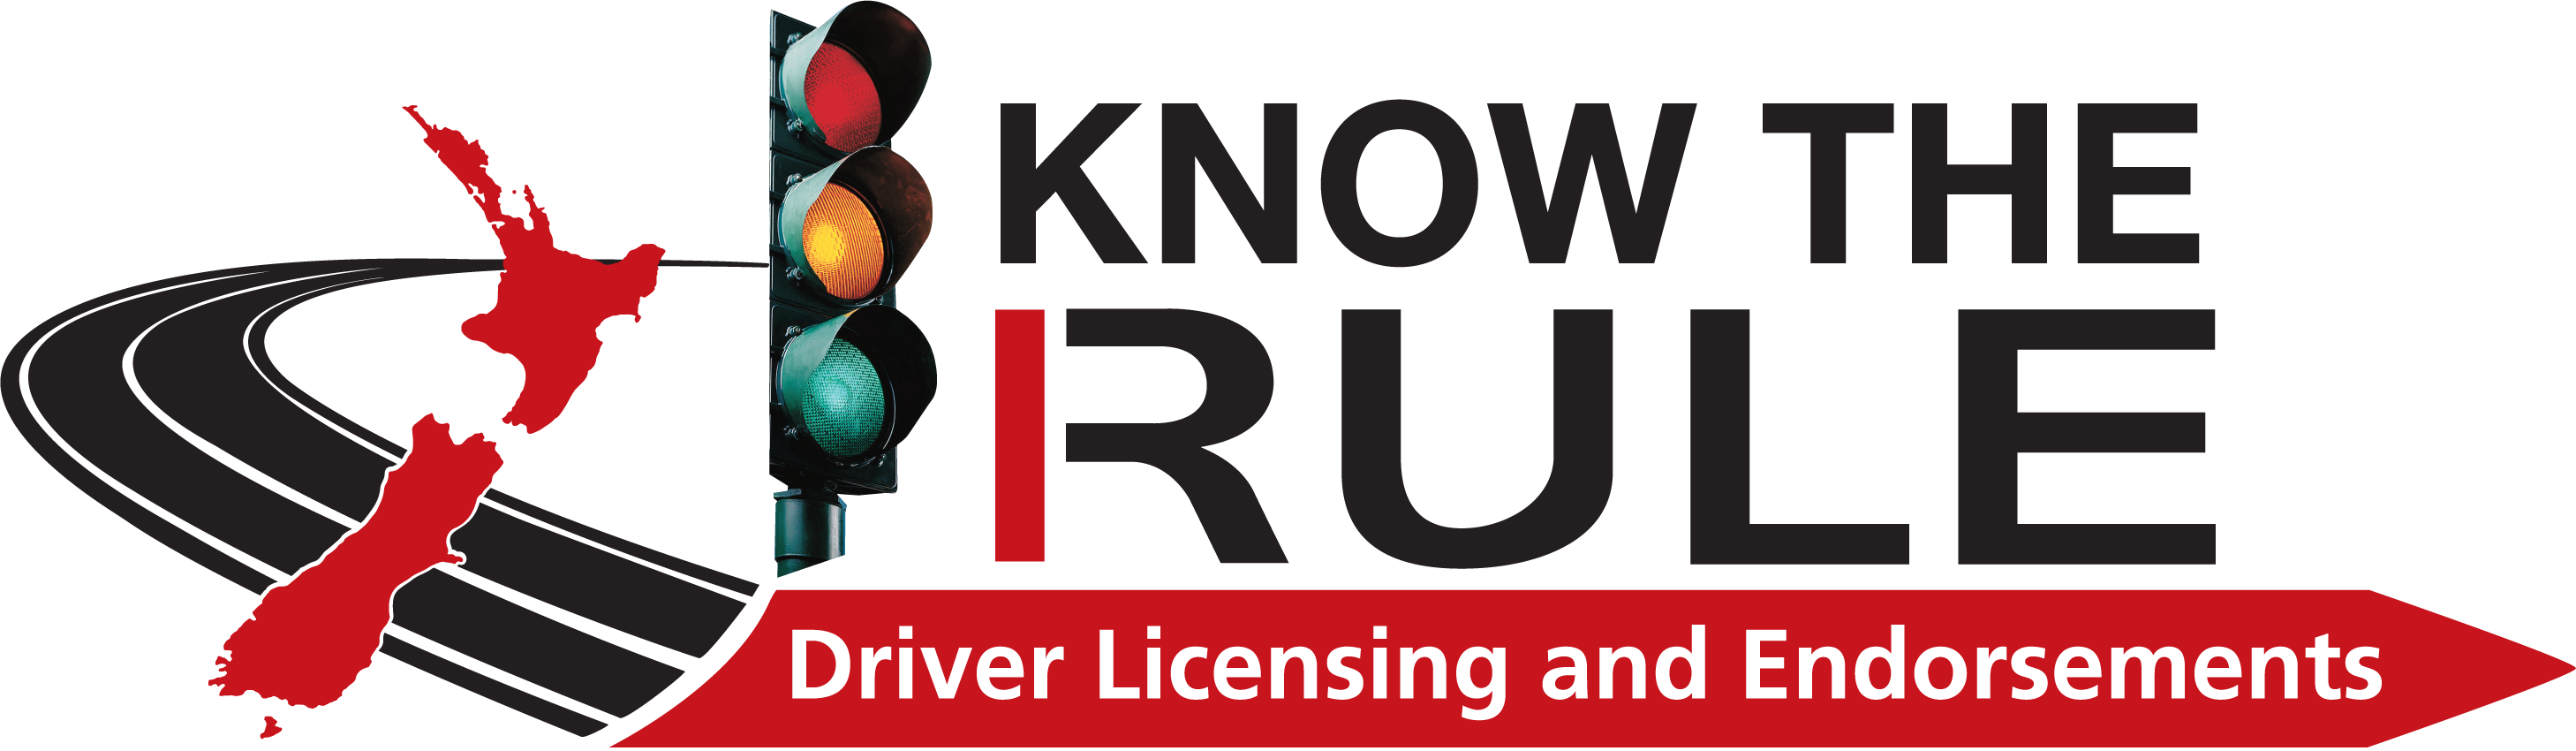 know the rule company logo